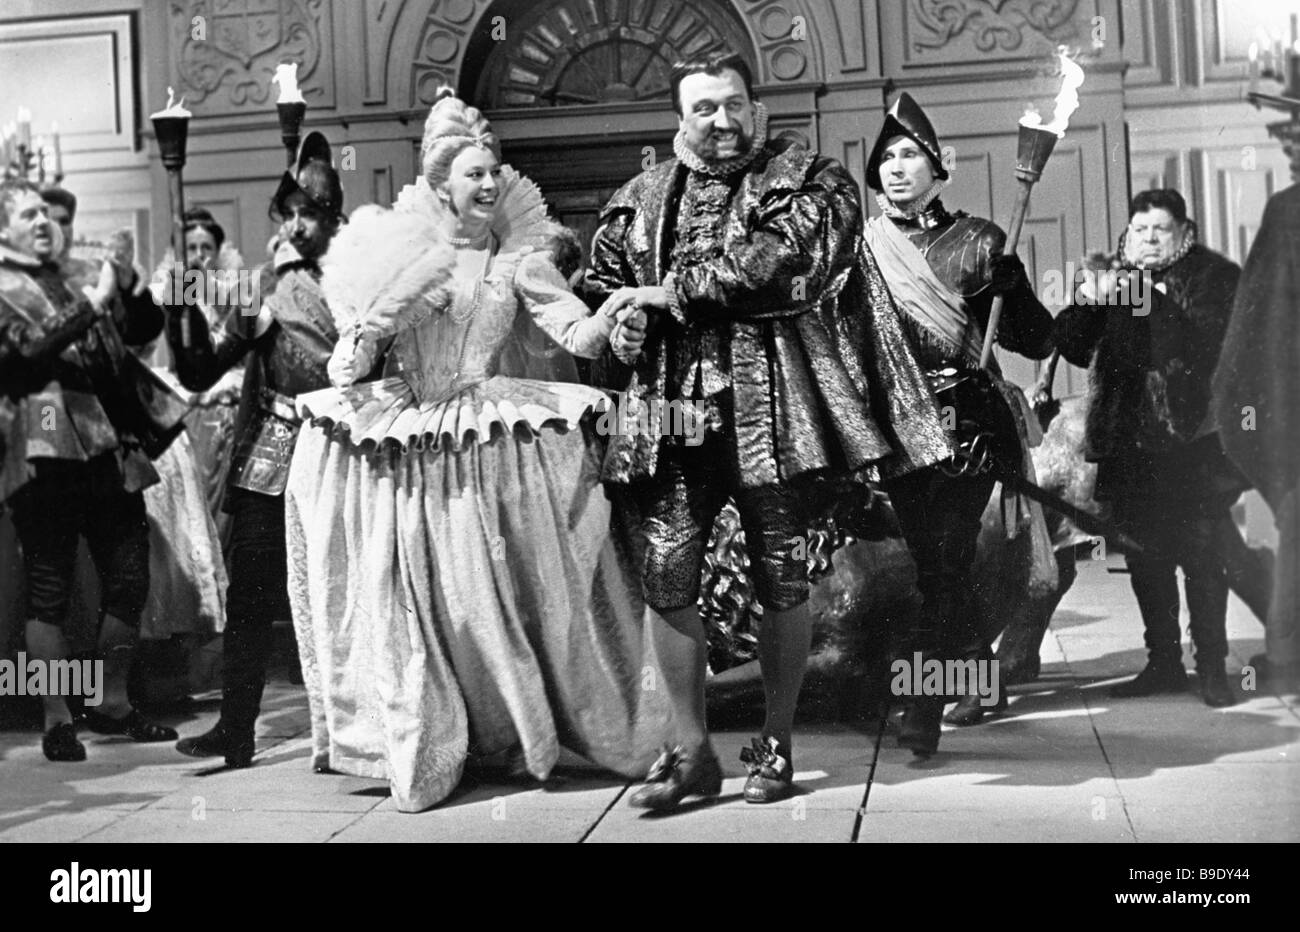 Scene from the film Hamlet by director Grigory Kozintsev - Stock Image